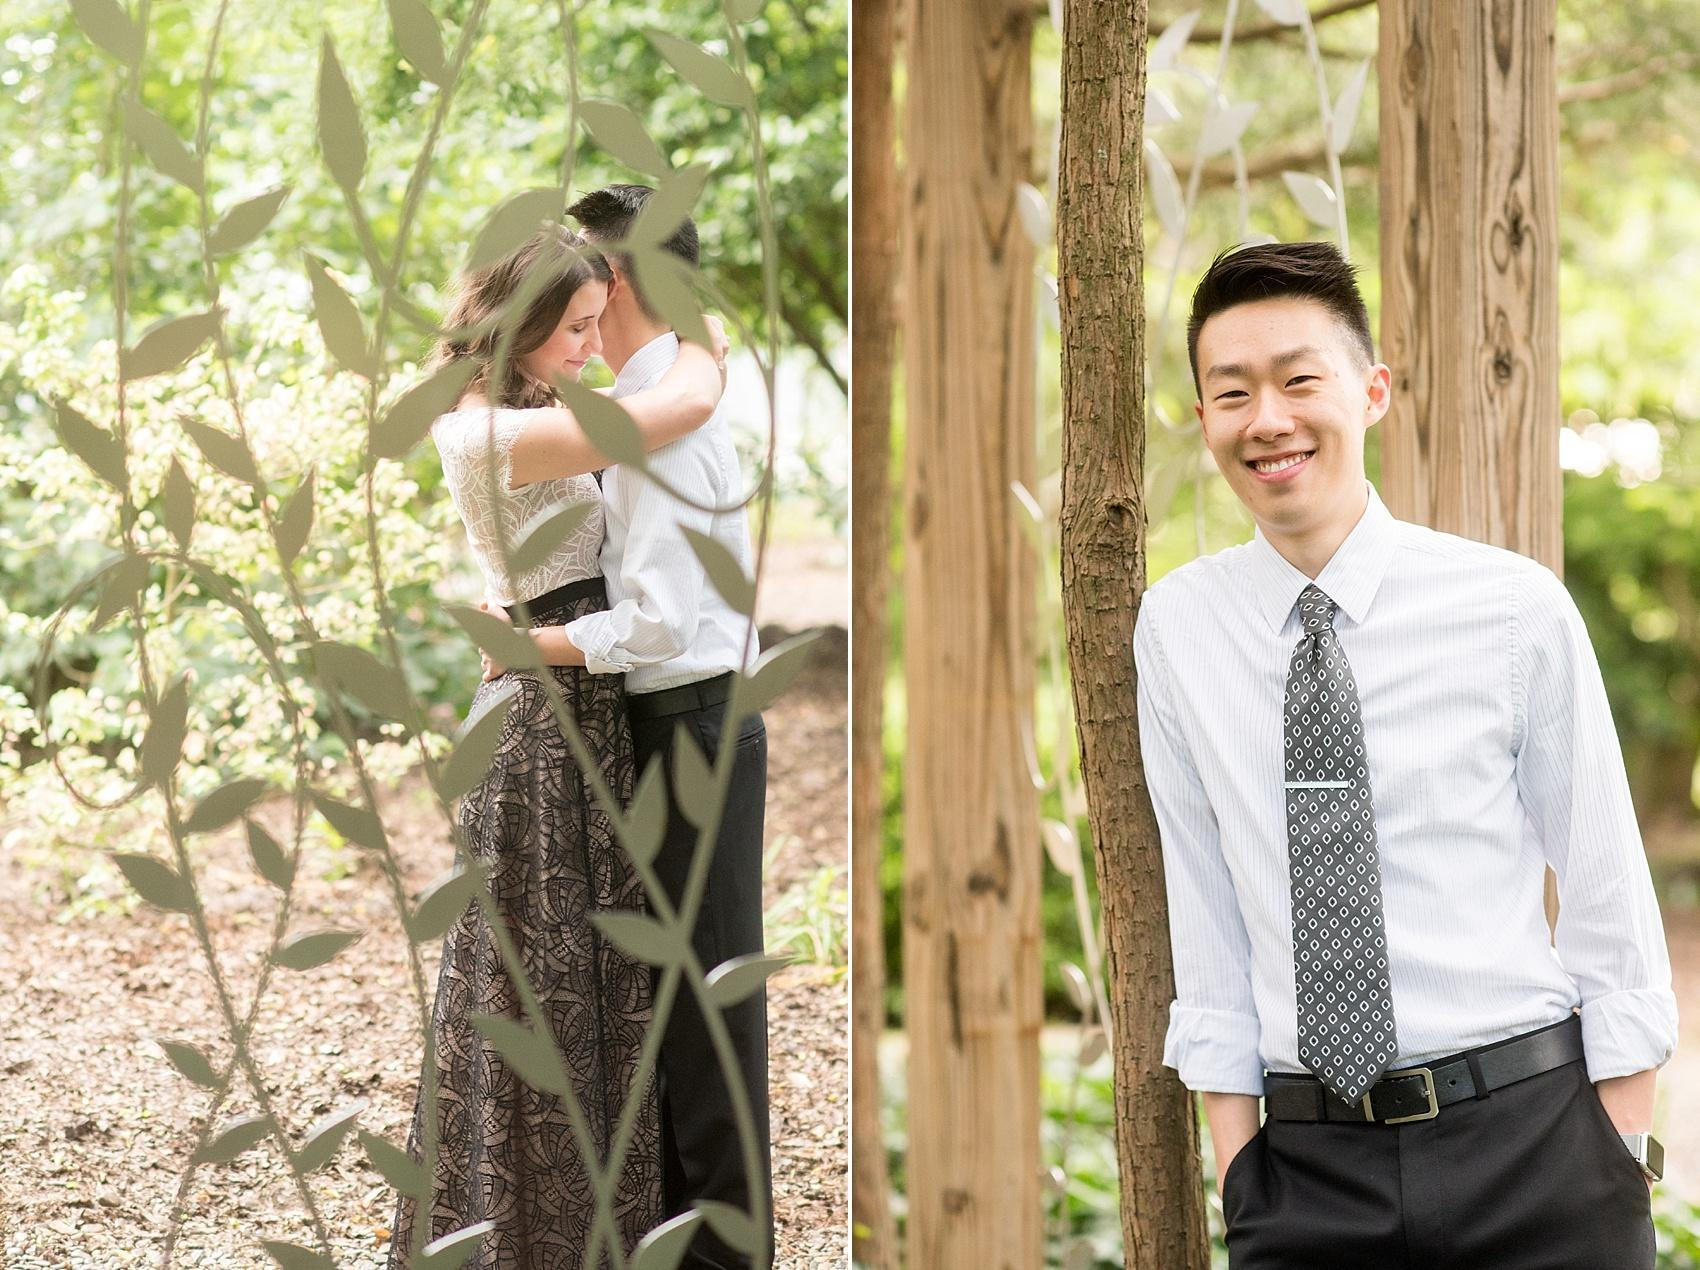 Raleigh North Carolina wedding photographer, Mikkel Paige Photography, photographs a fairy tale engagement session at Raulston Arboretum at NC State campus.